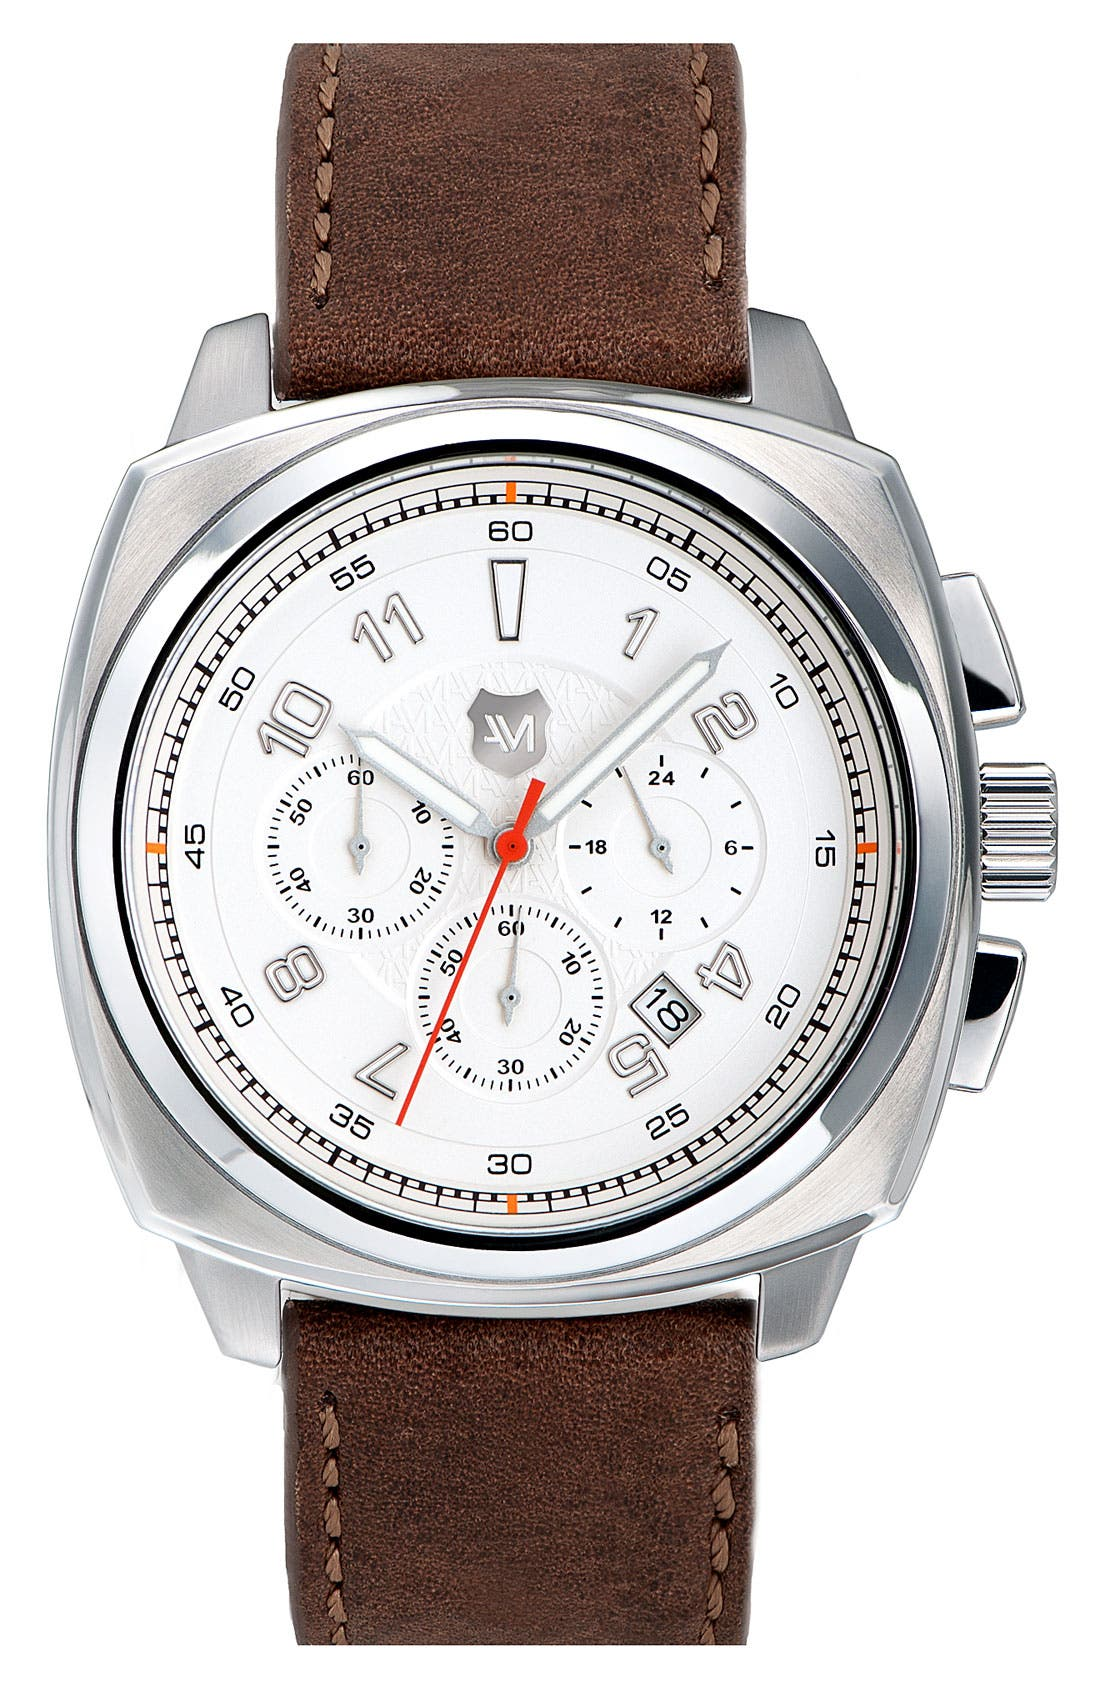 Main Image - Andrew Marc Watches 'Heritage Bomber' Leather Strap Watch